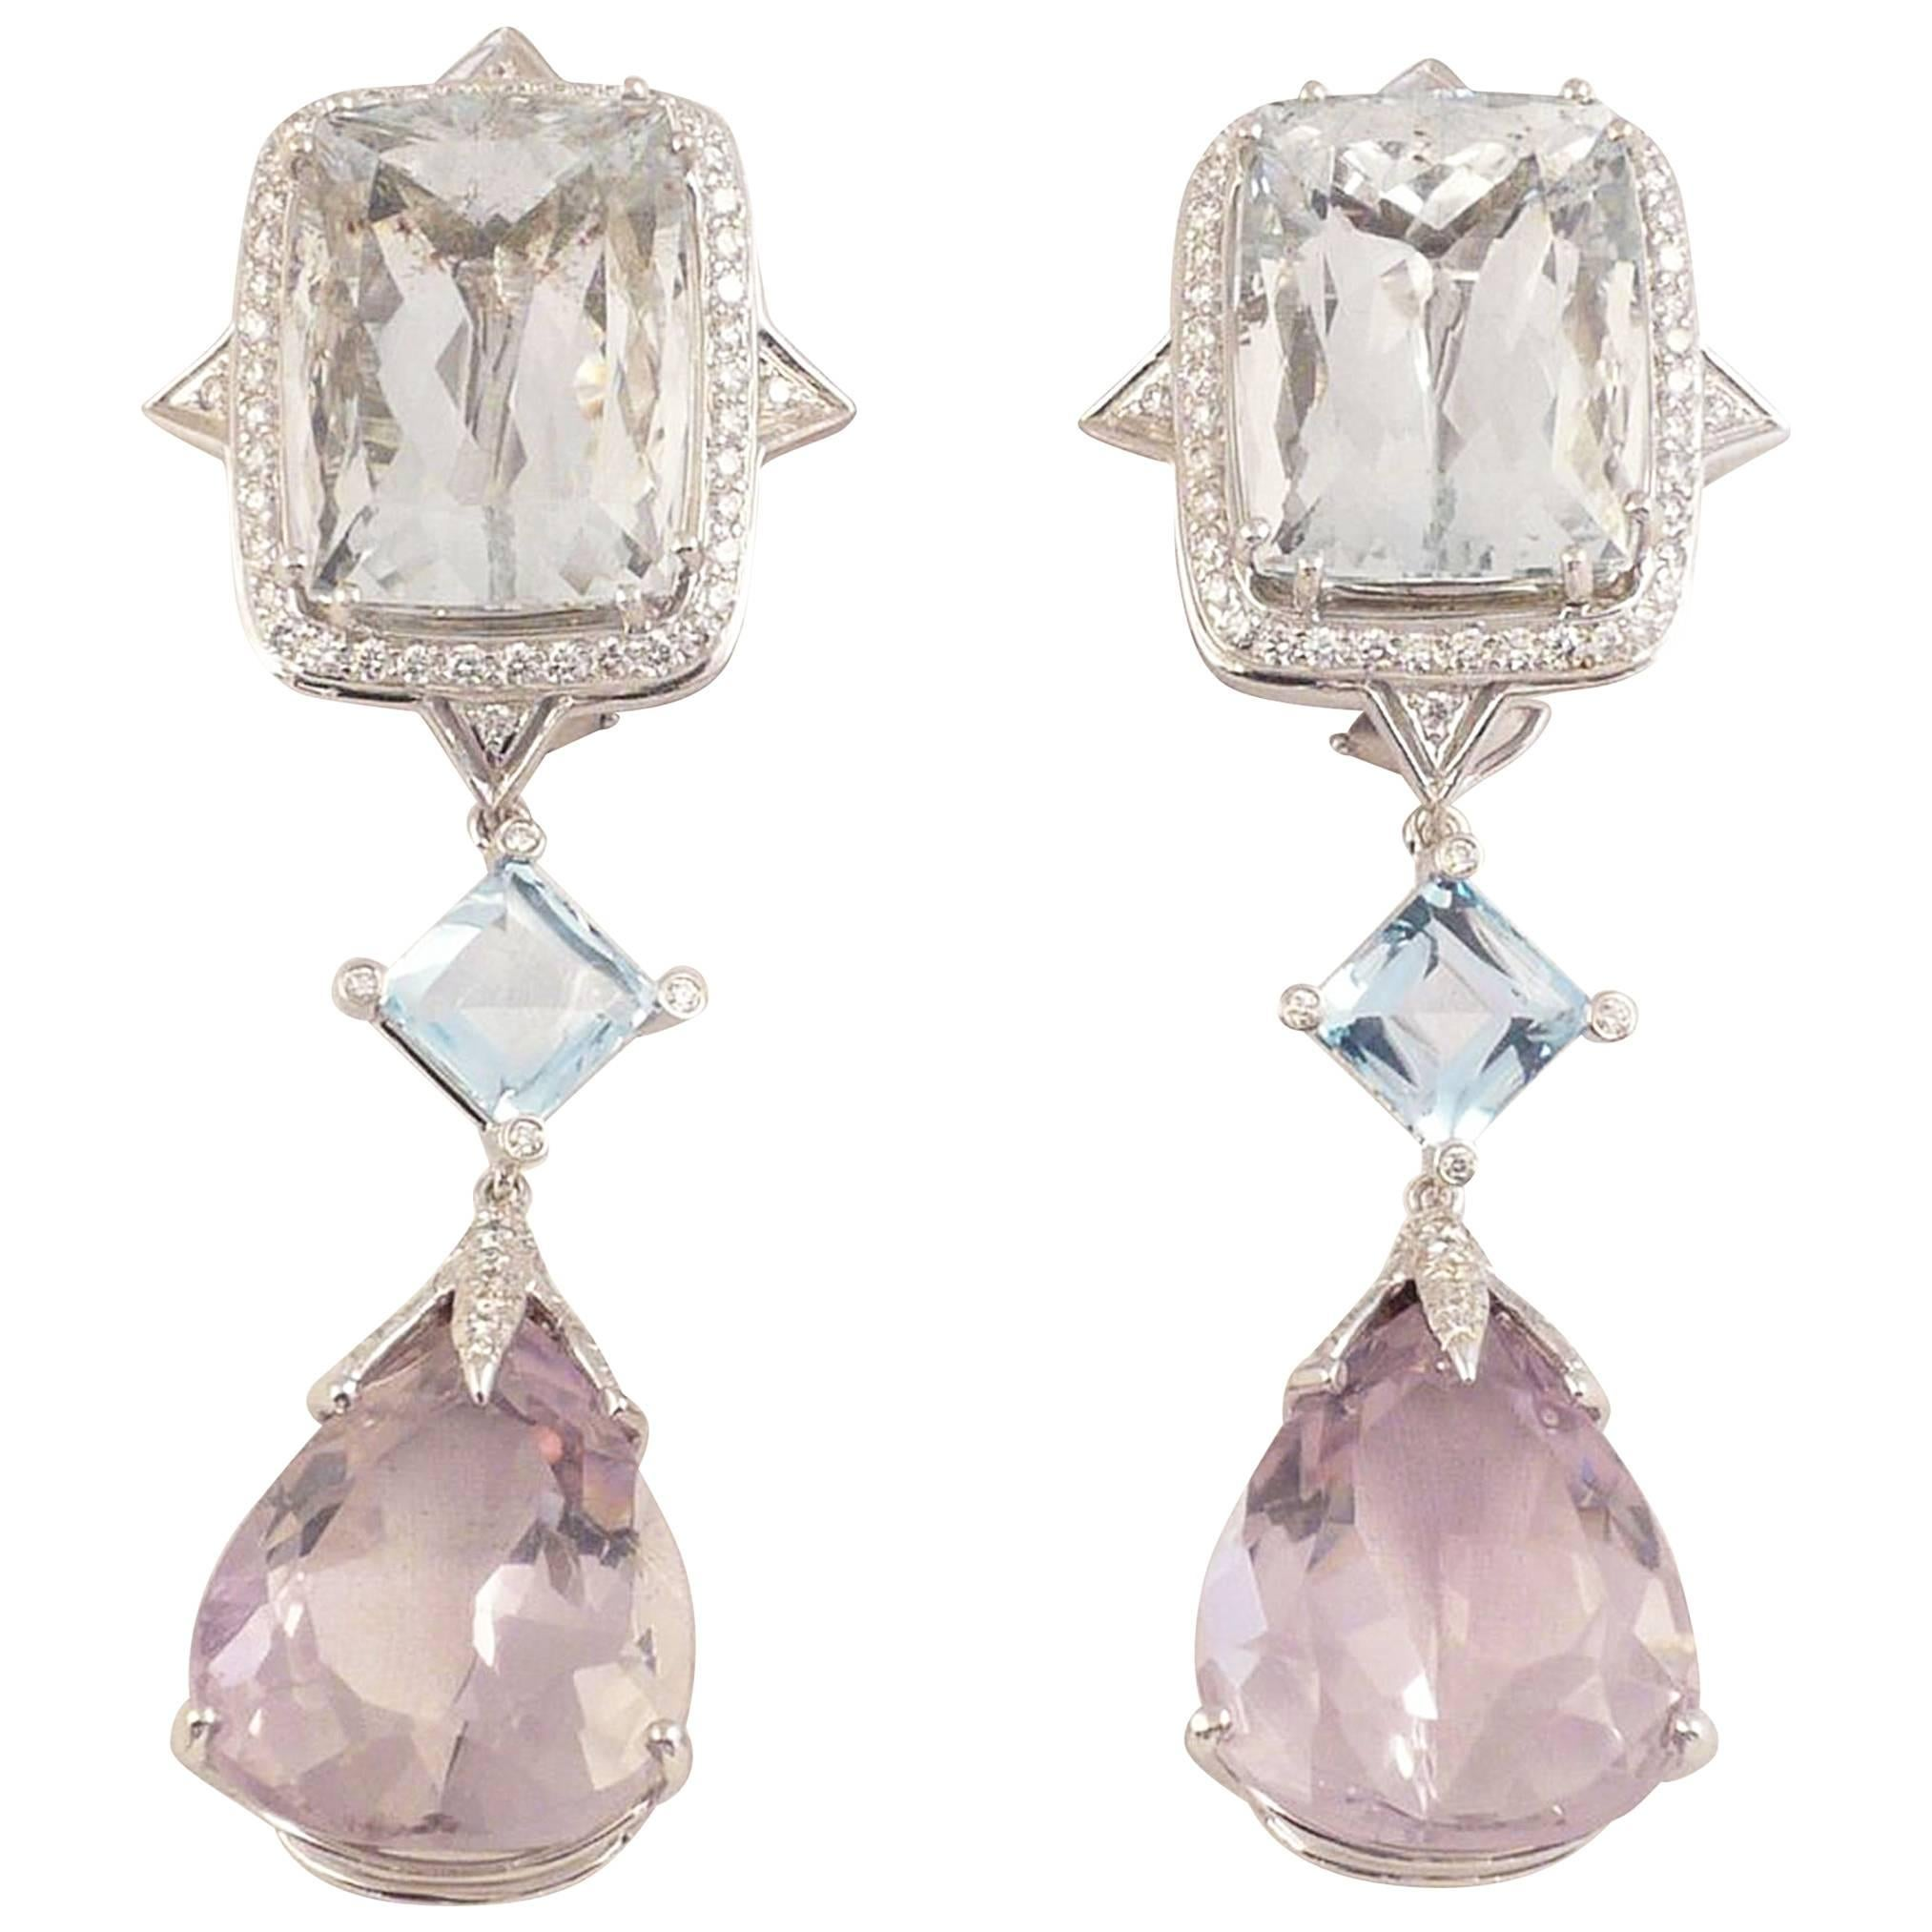 woodstock jewelers kunzite photo ferro estate product coral amethyst earrings jewelry